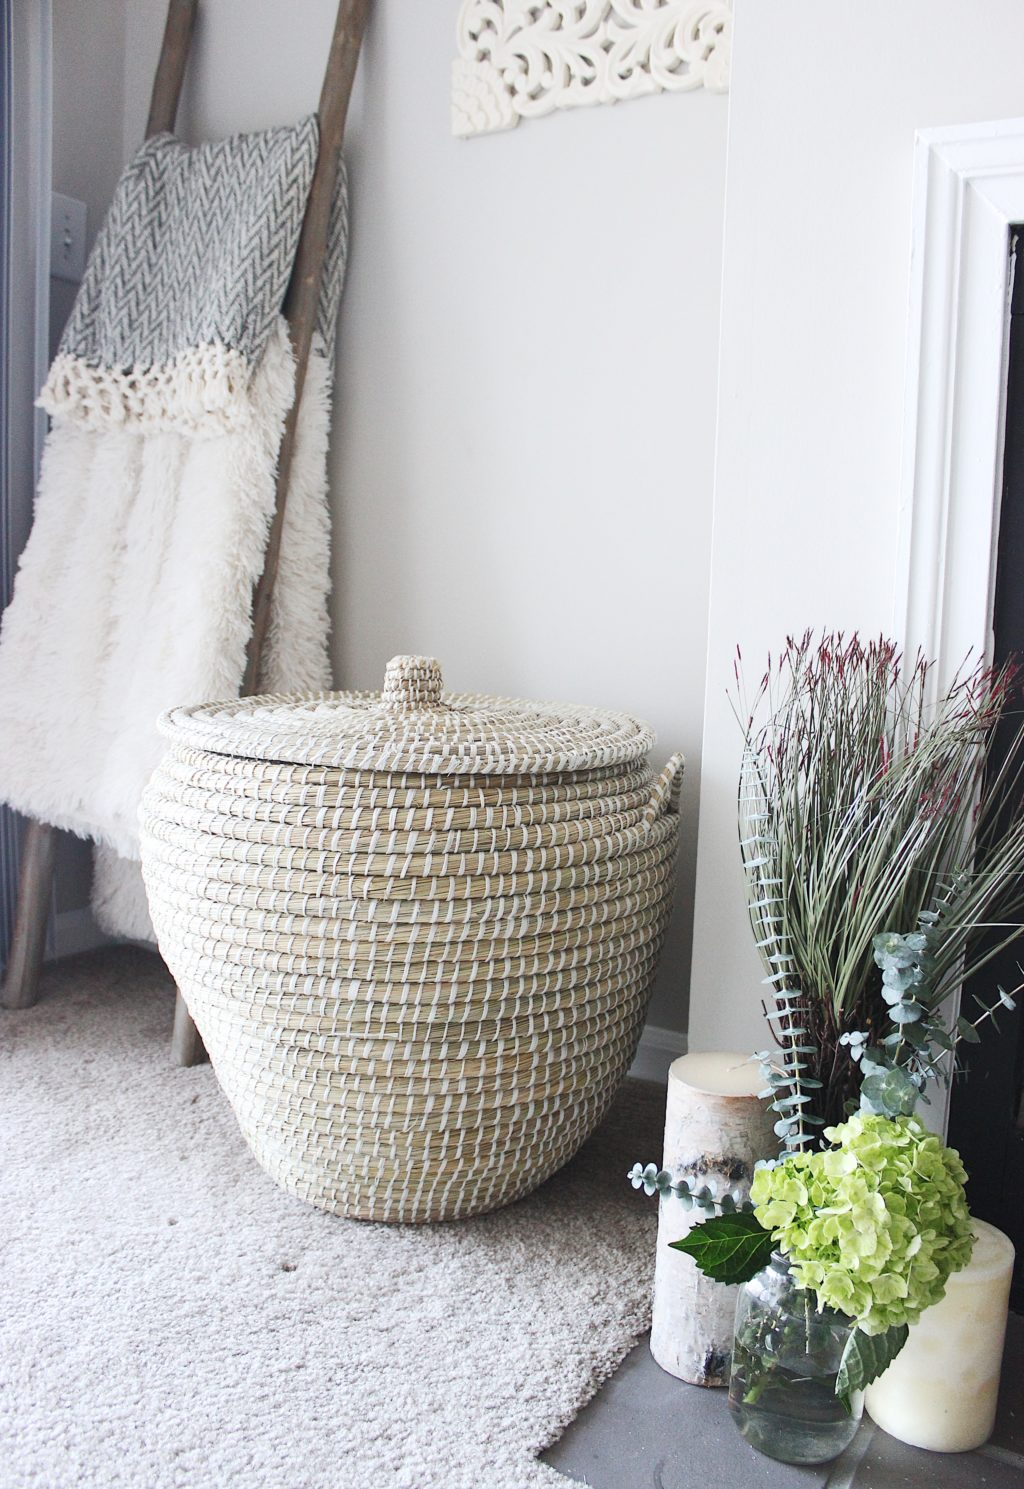 Moroccan floor basket blanket ladder